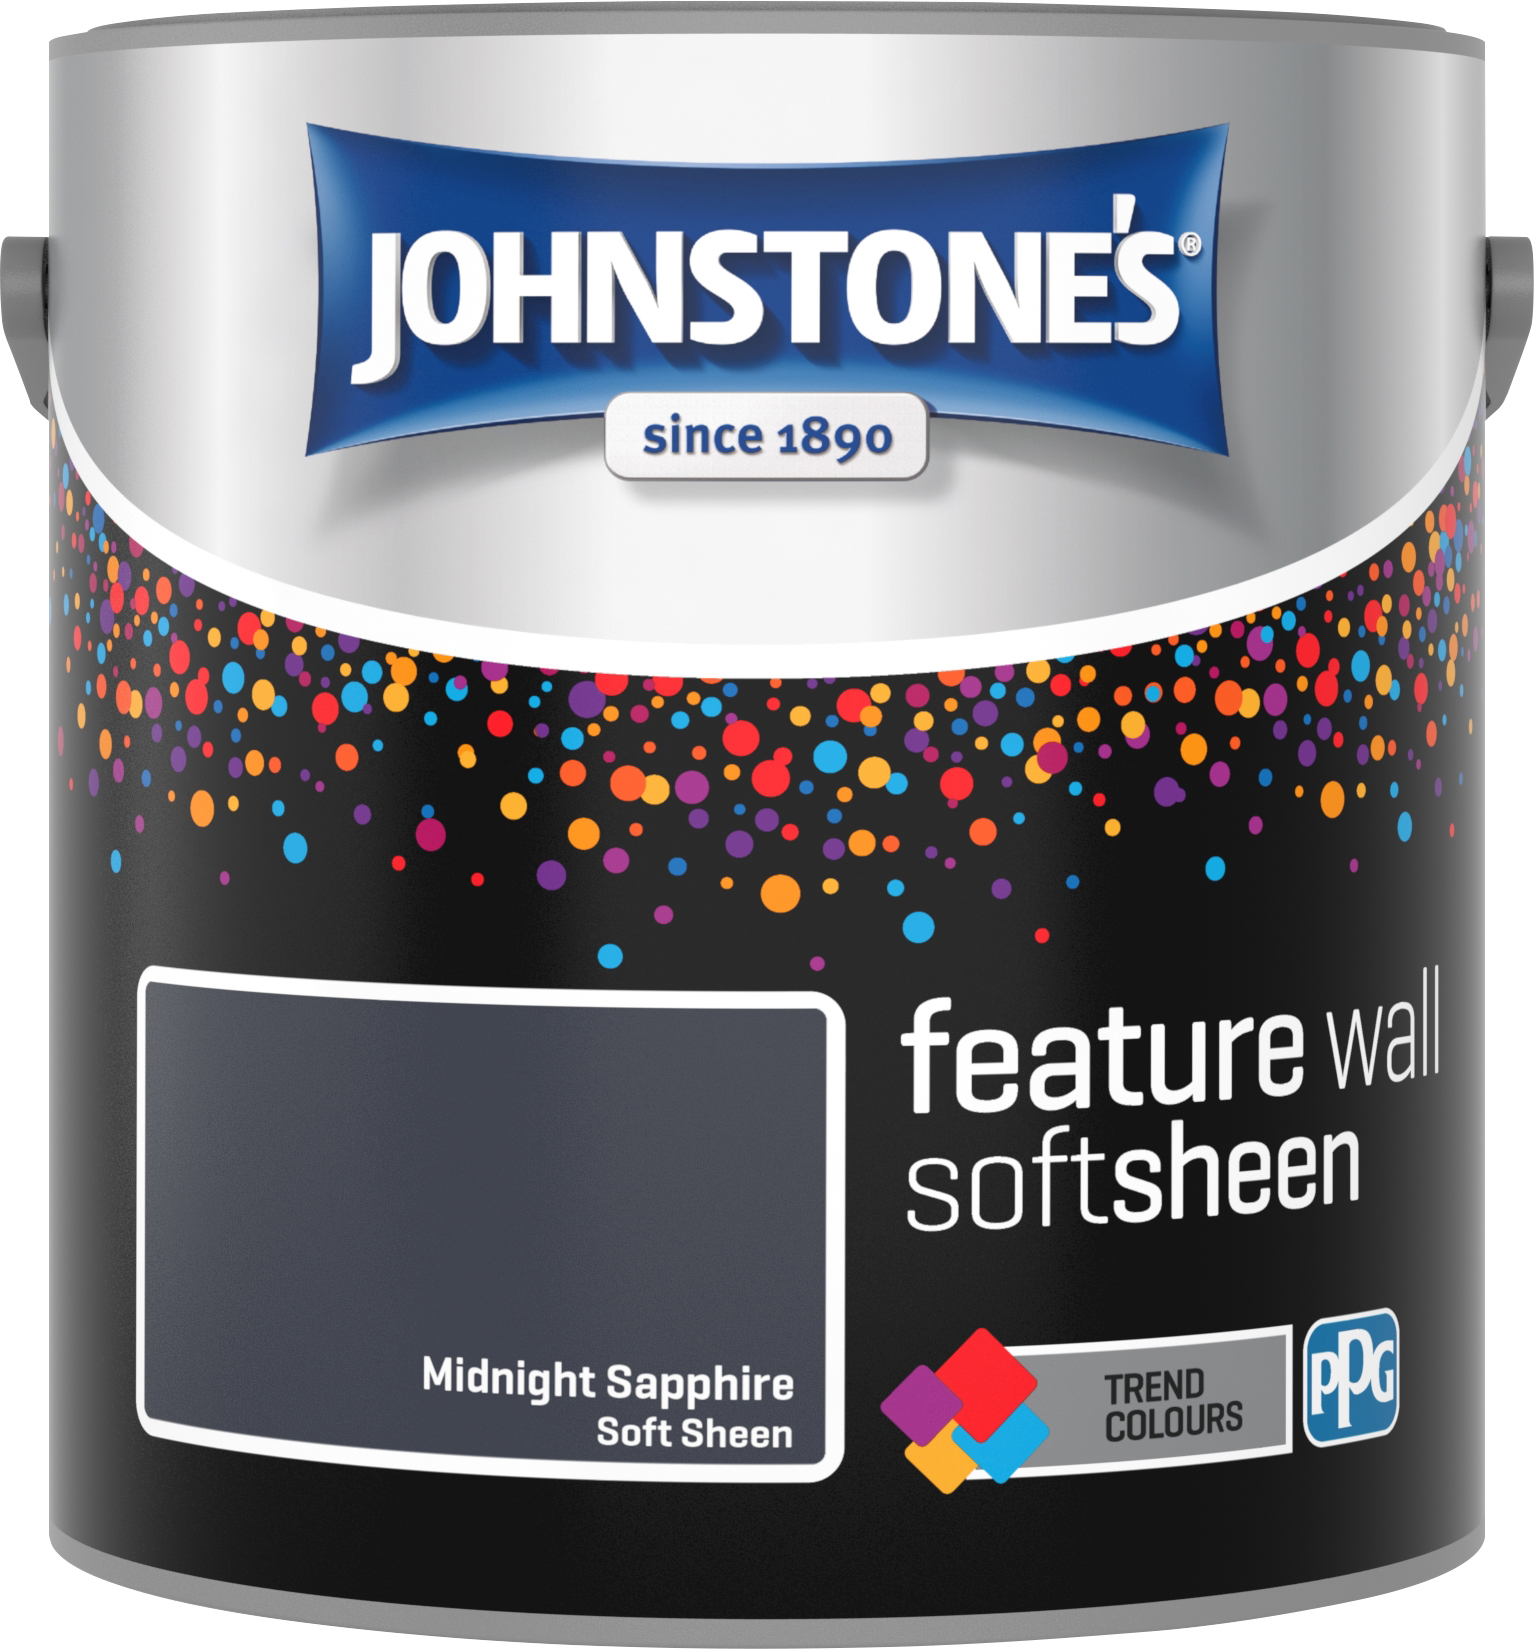 Johnstone's 2.5 Litre Feature Wall Soft Sheen Emulsion Paint - Midnight Sapphire